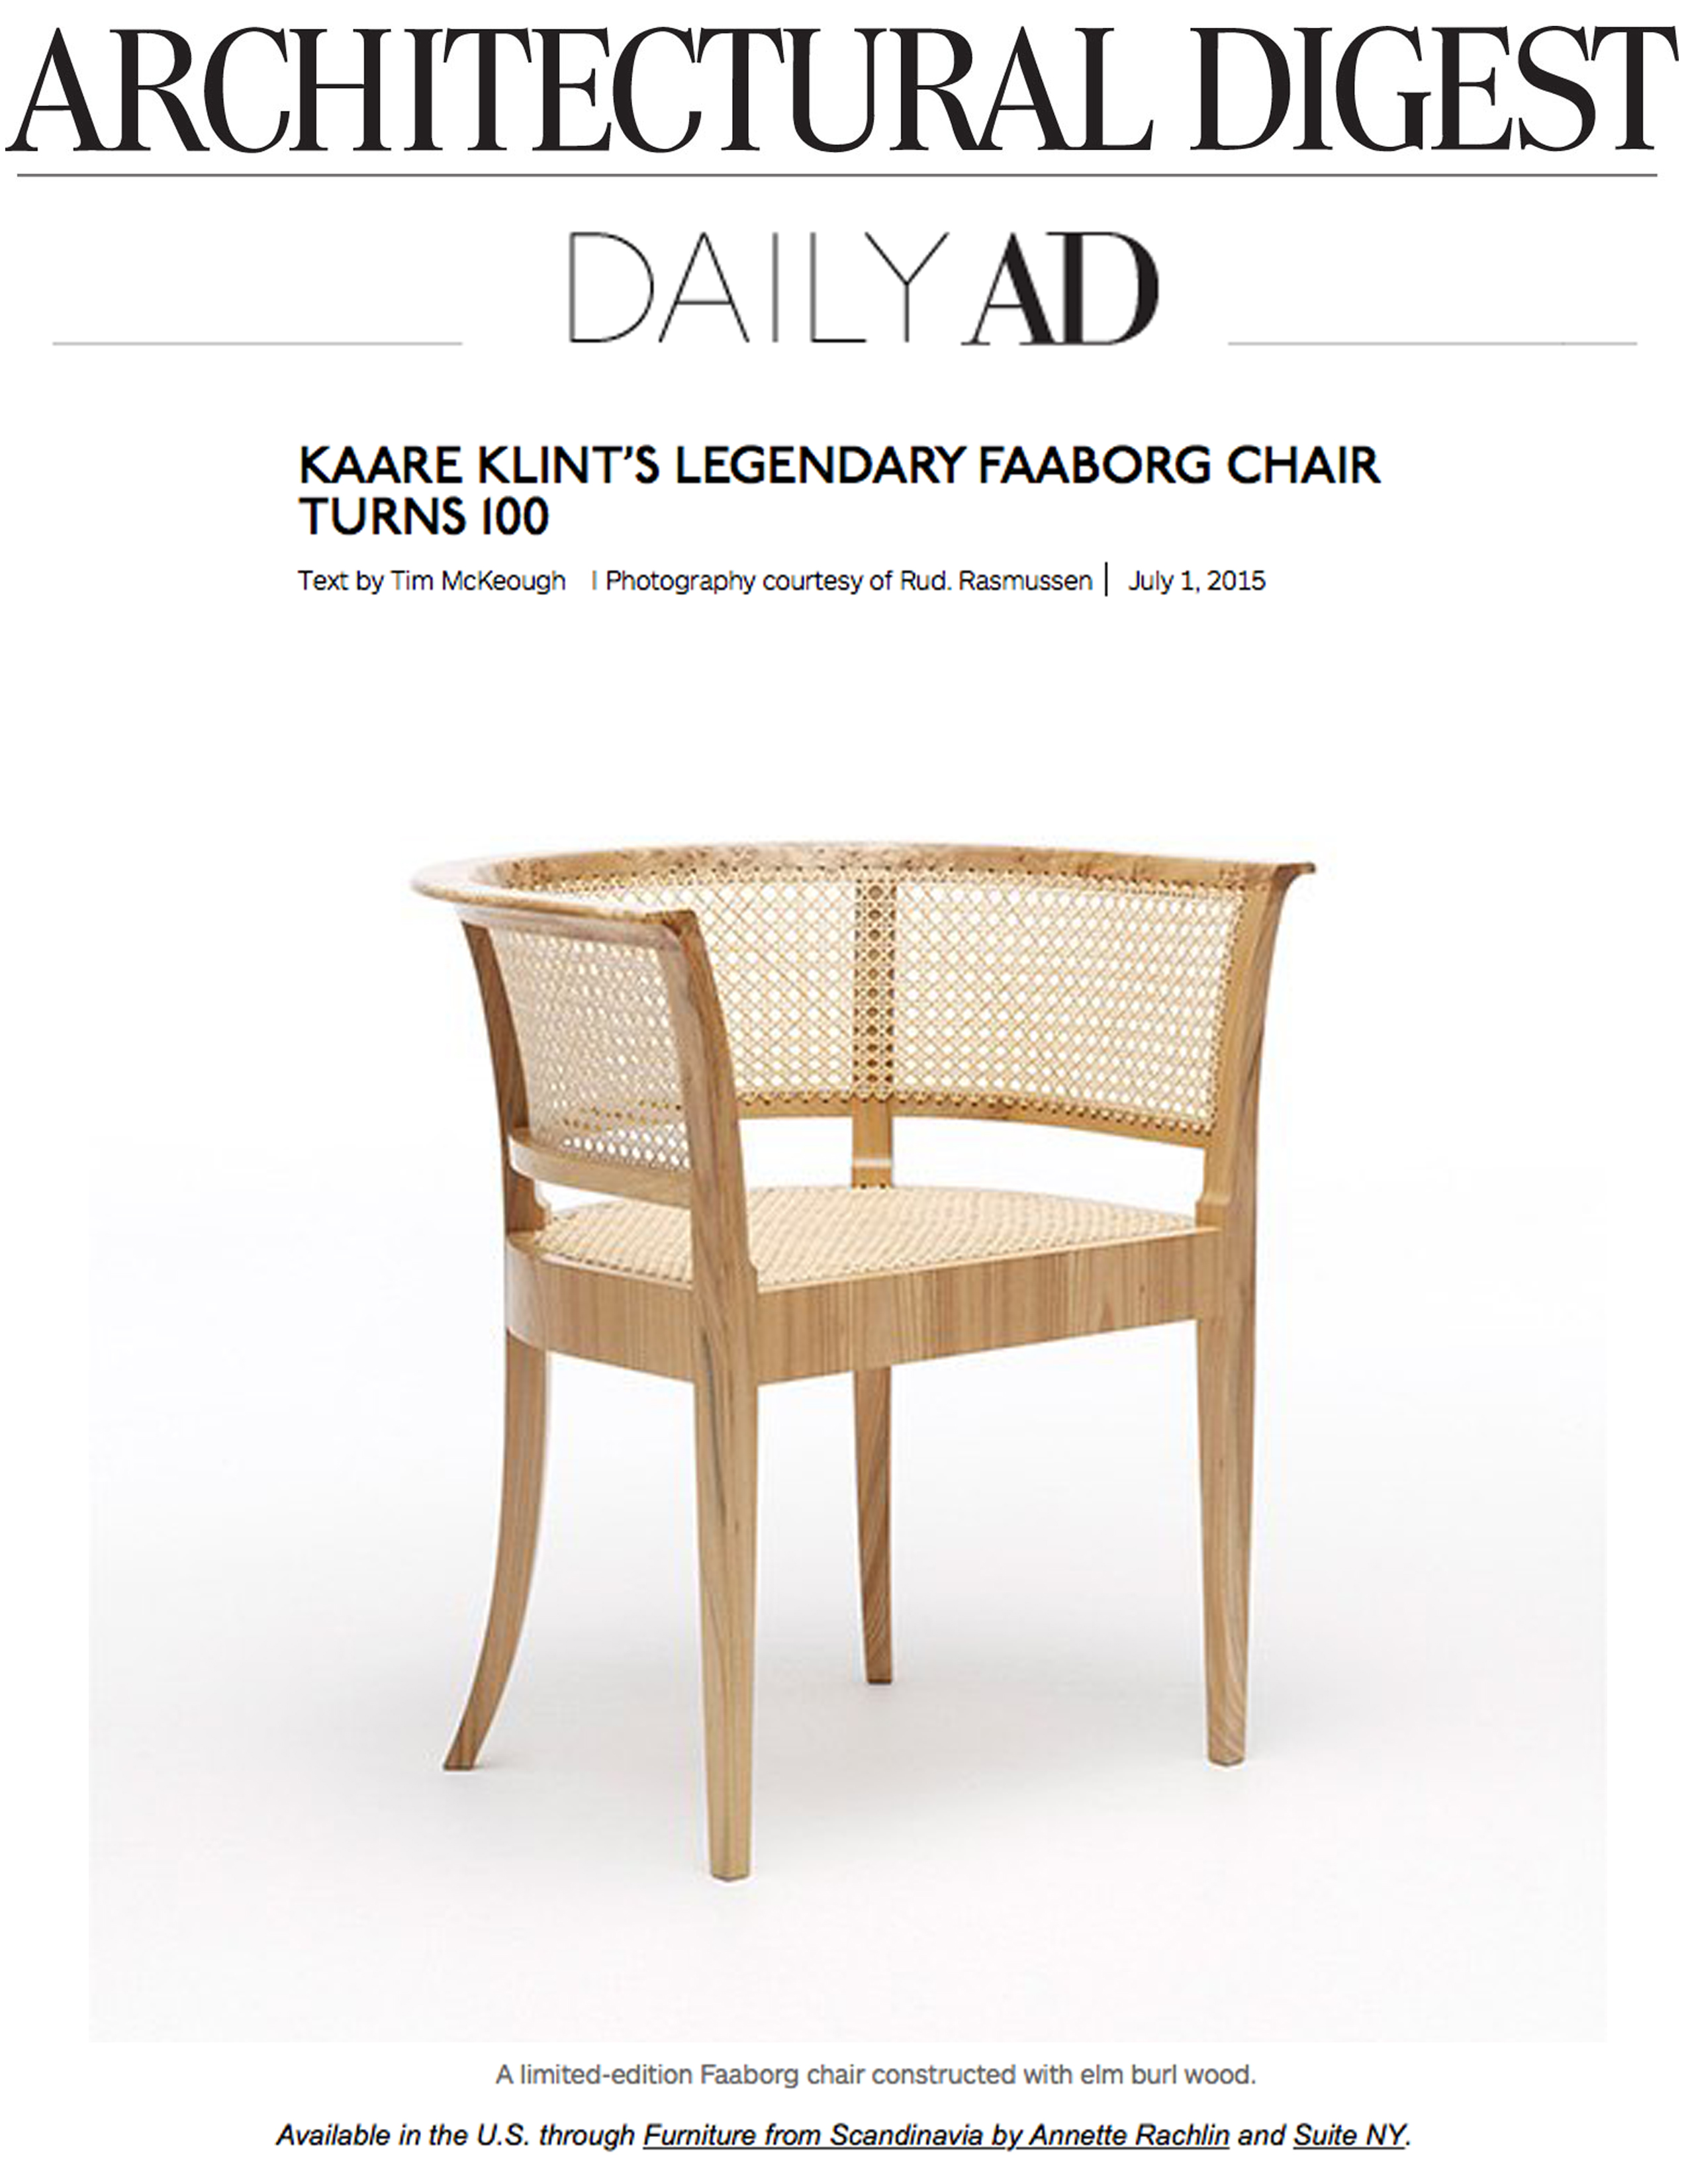 Architectural digest daily ad faaborg chair suite news for Designer furniture new york